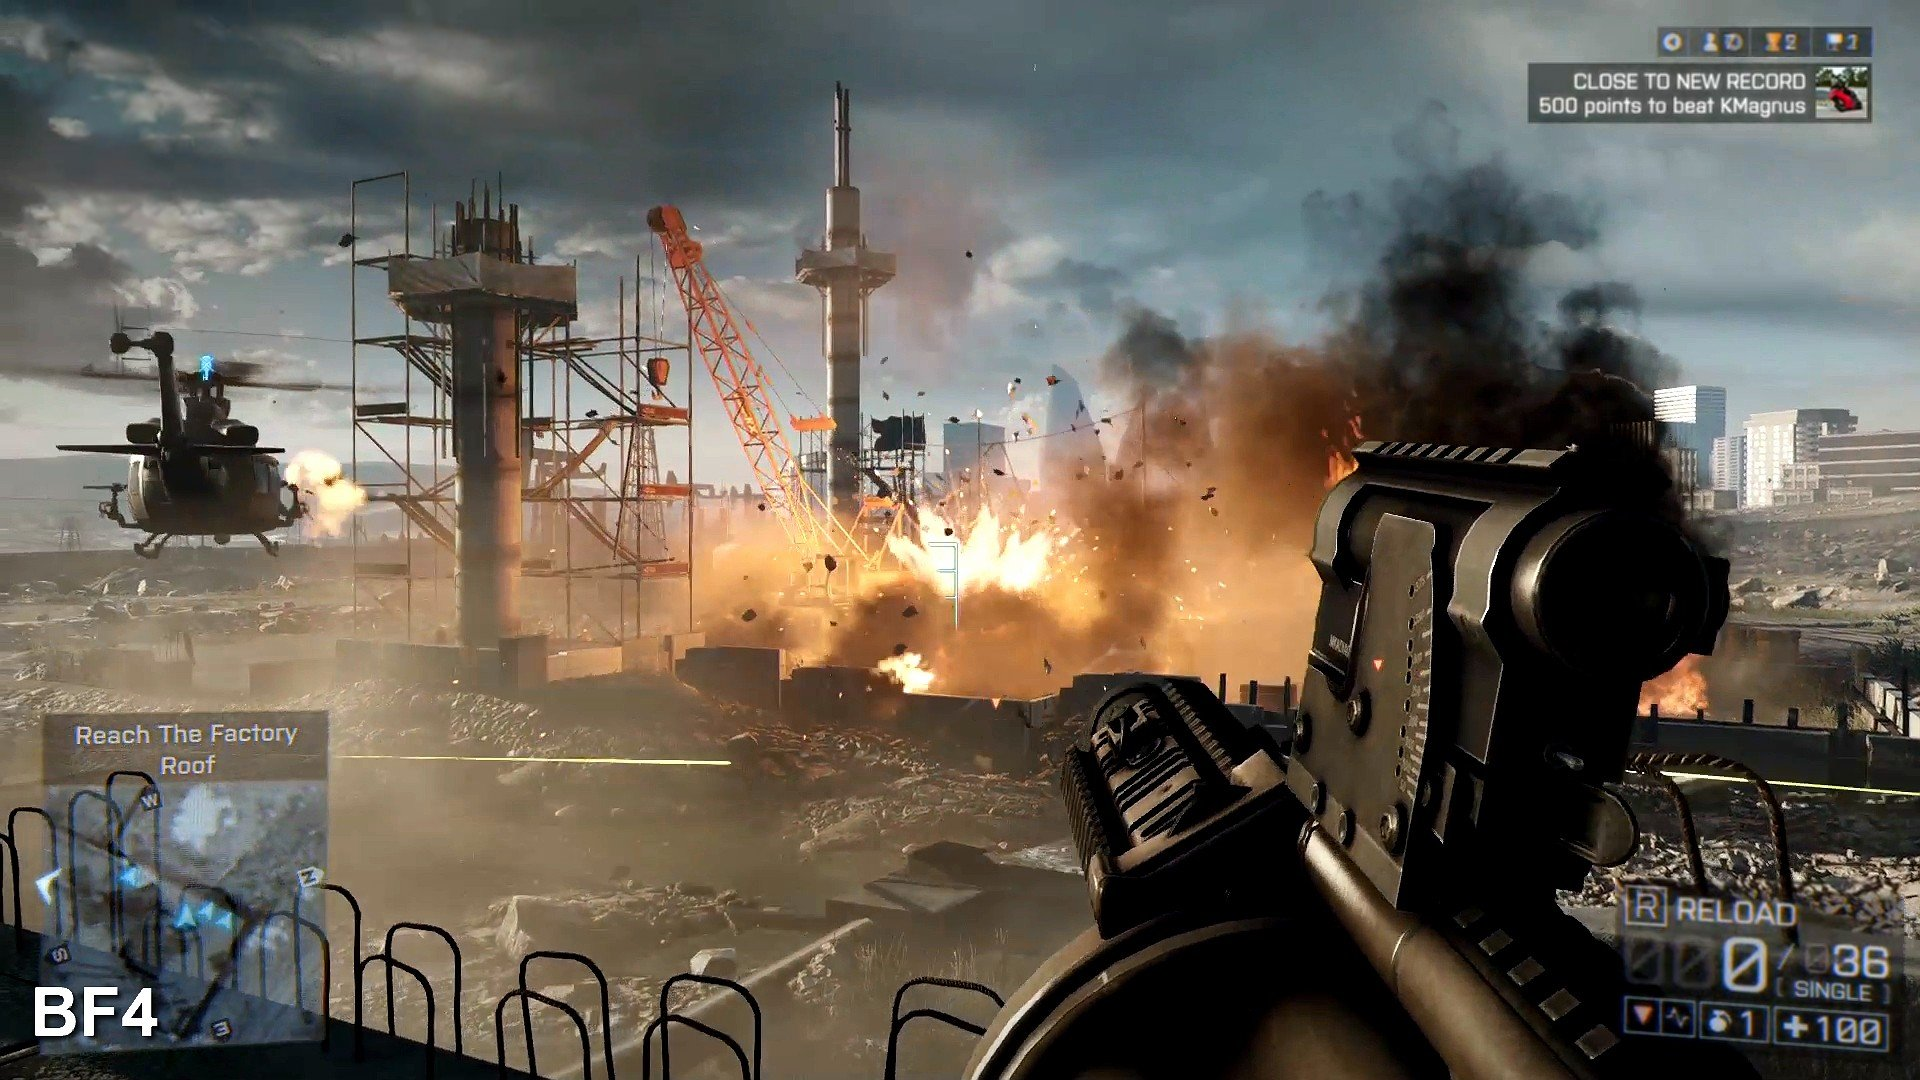 Download Wallpaper 1280x1280 Battlefield 4 Game Ea: Battlefield Dice EA Games Battlefield 4 Wallpaper